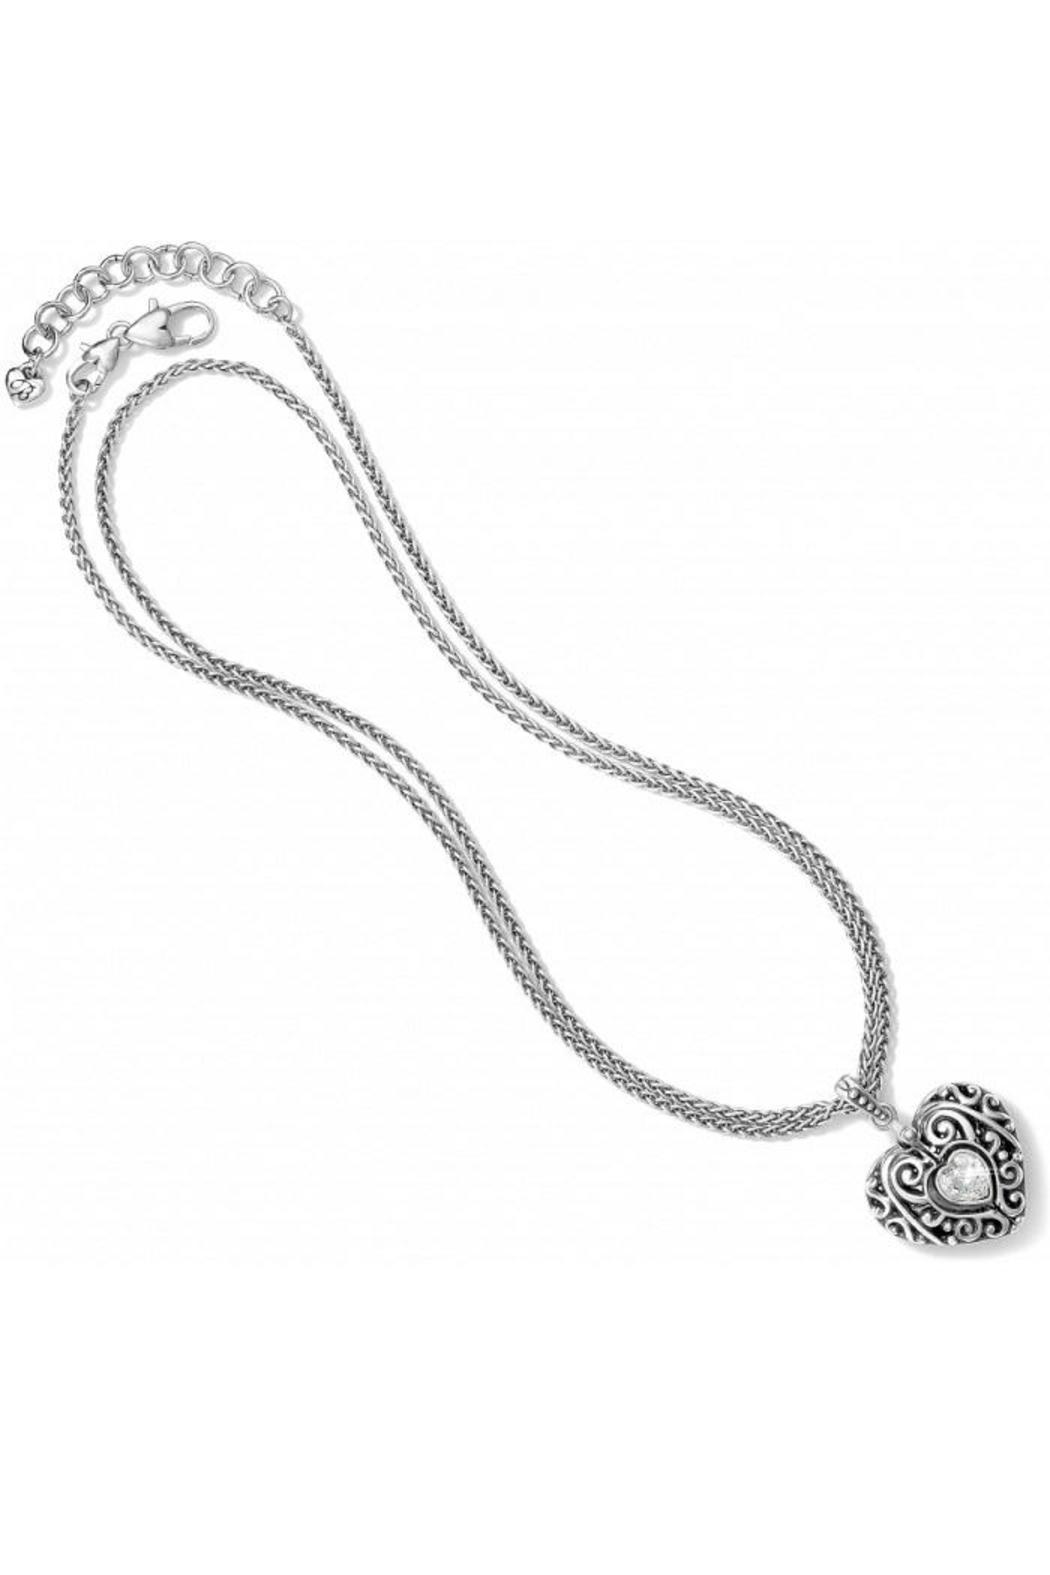 Brighton Heart Lock Necklace From Canada By A Passion For